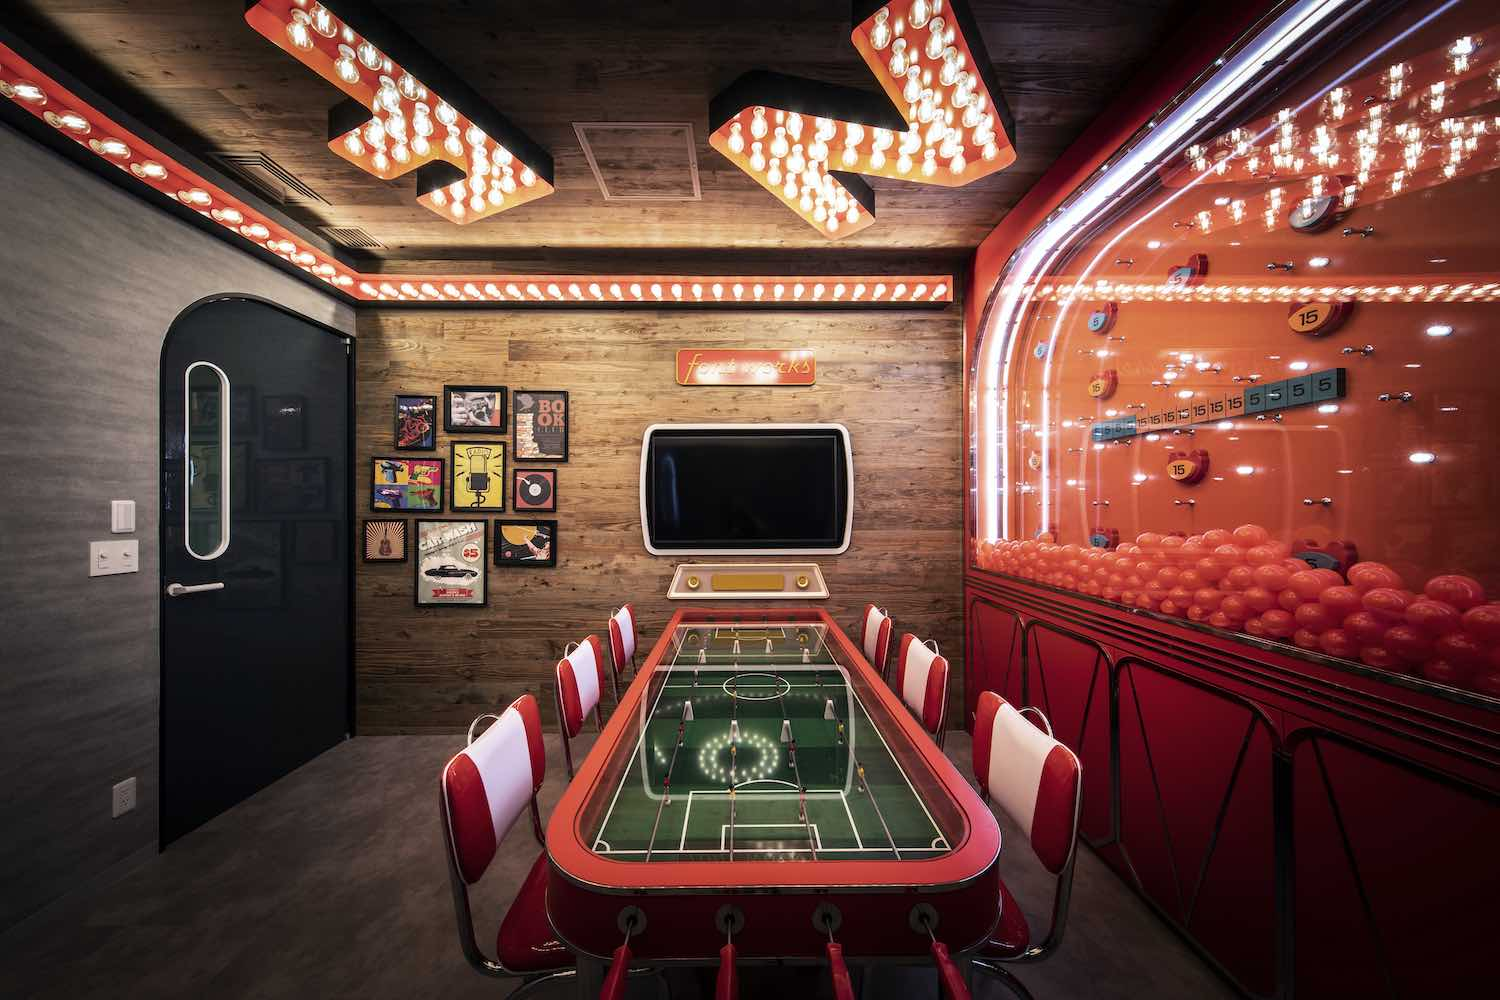 a soccer table inside the gaming room